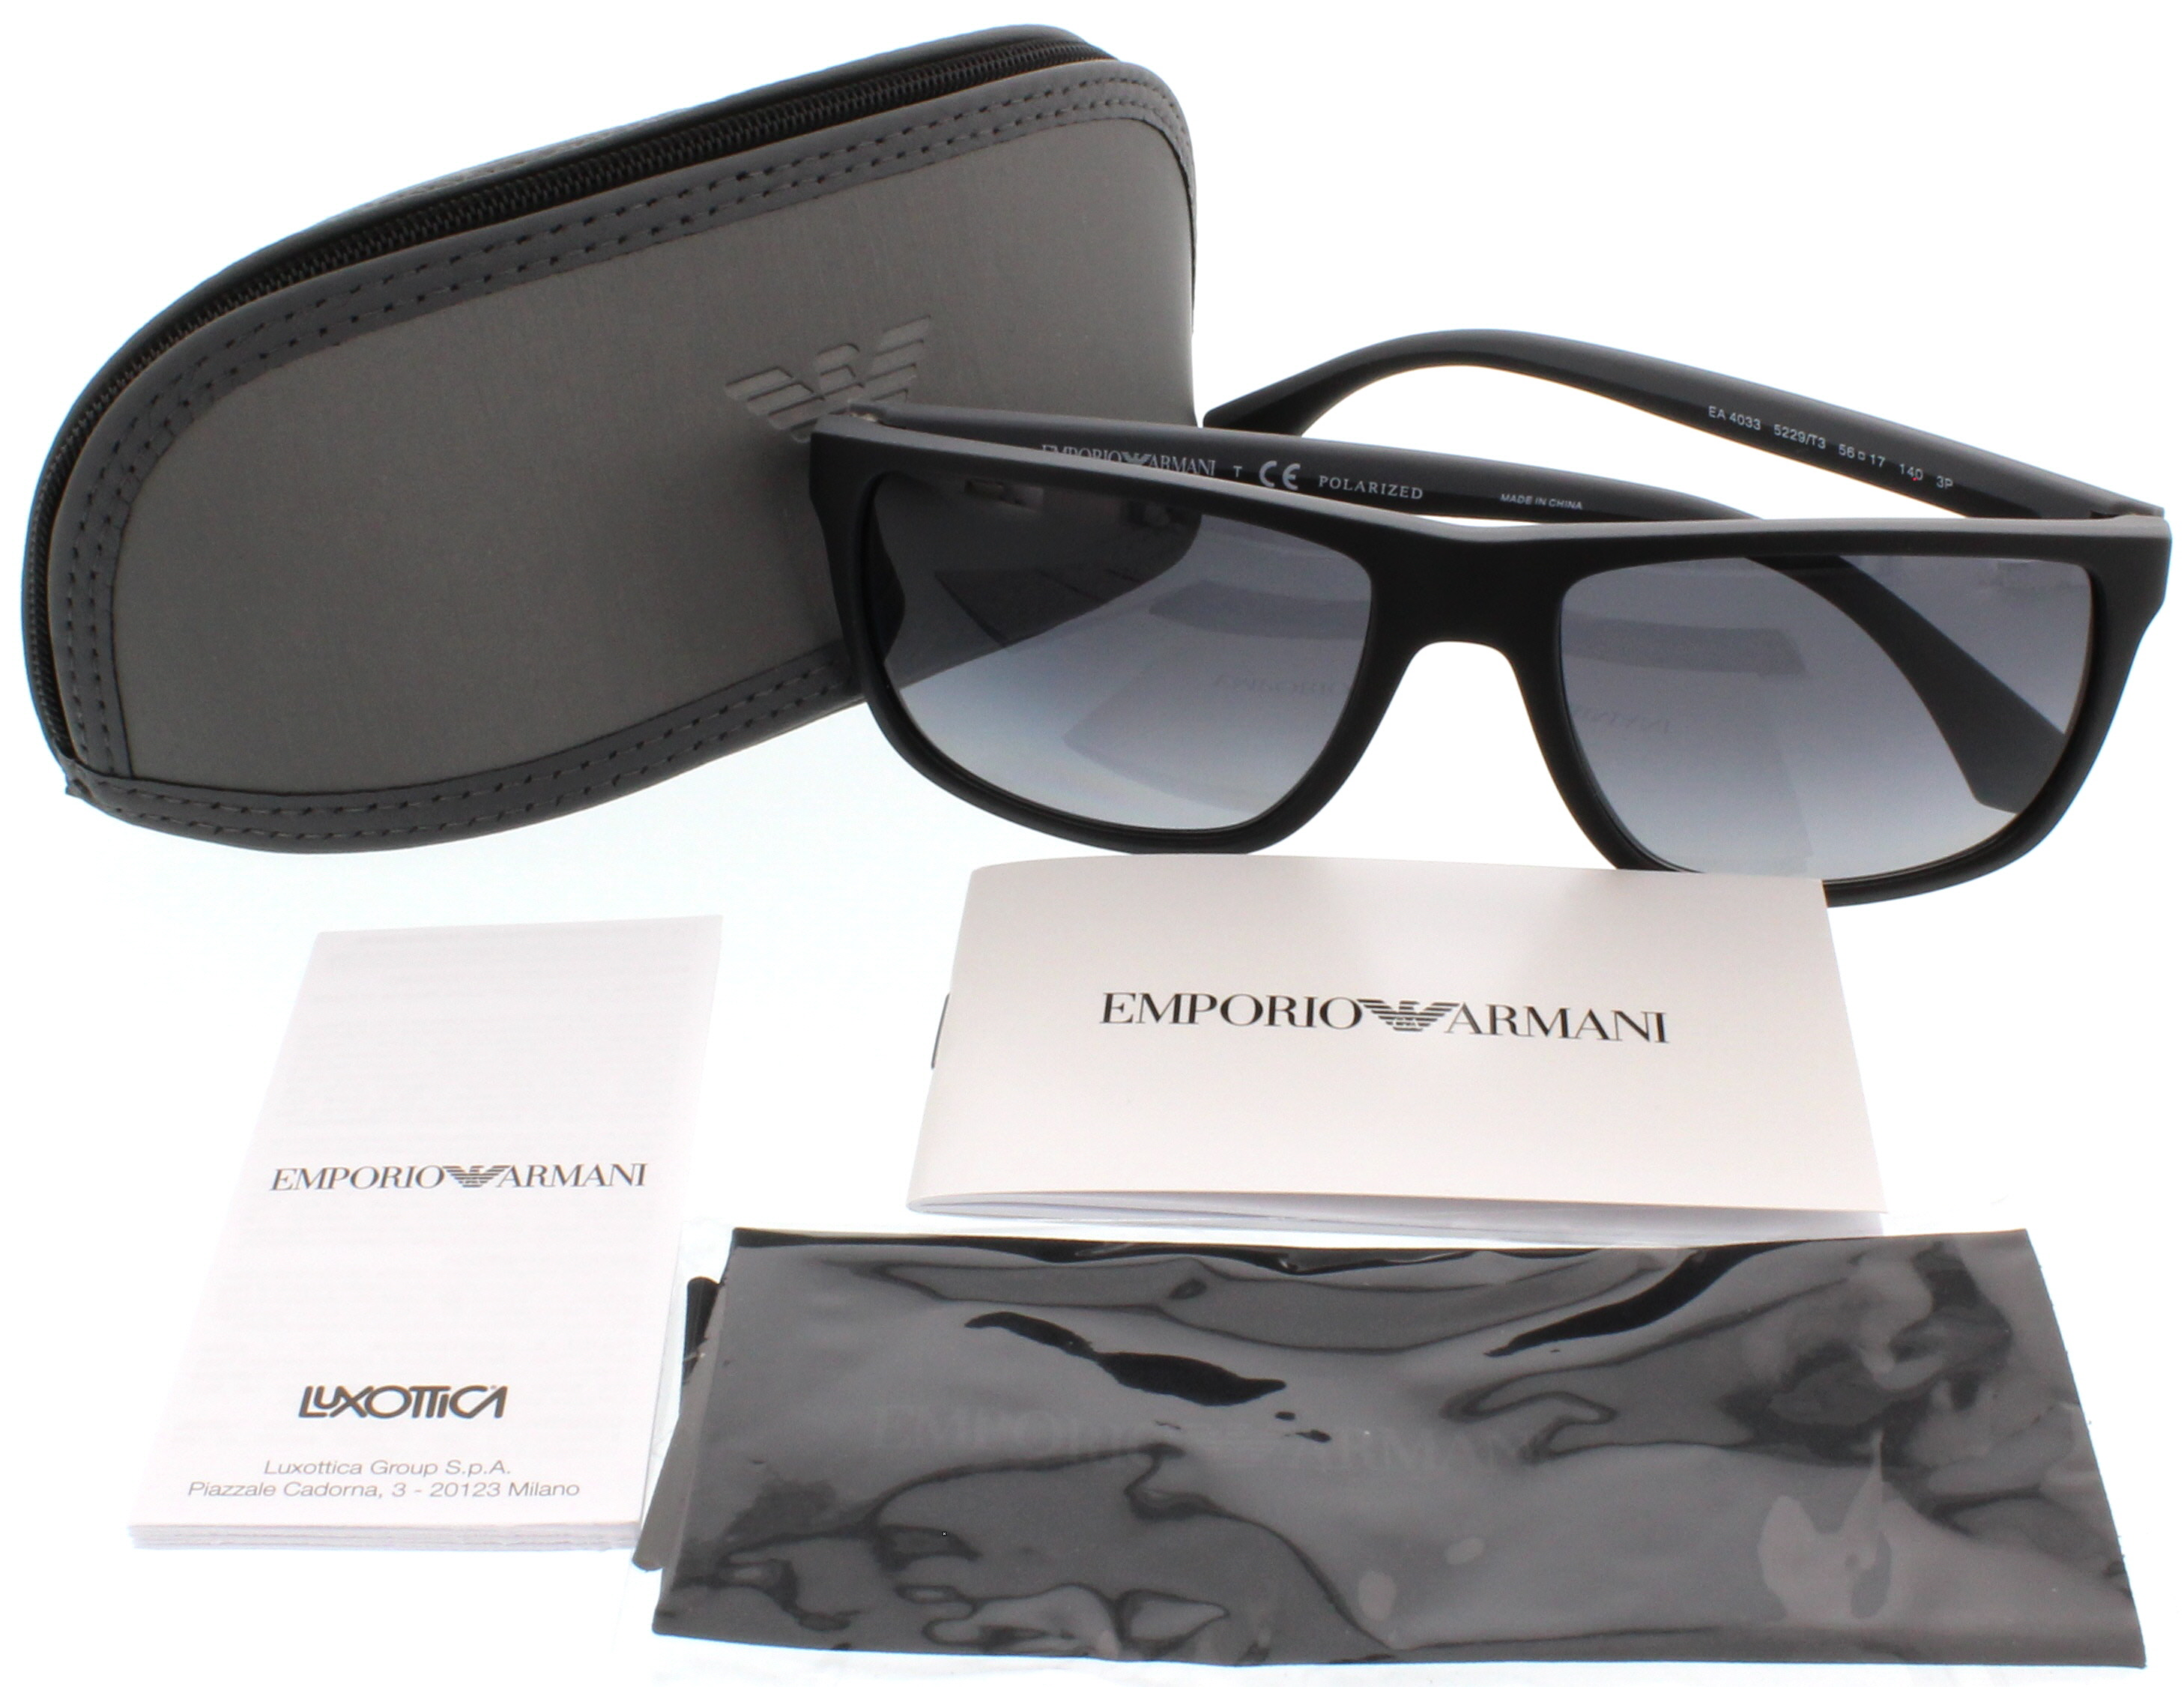 6695e35c51 Picture of Emporio Armani Sunglasses EA4033